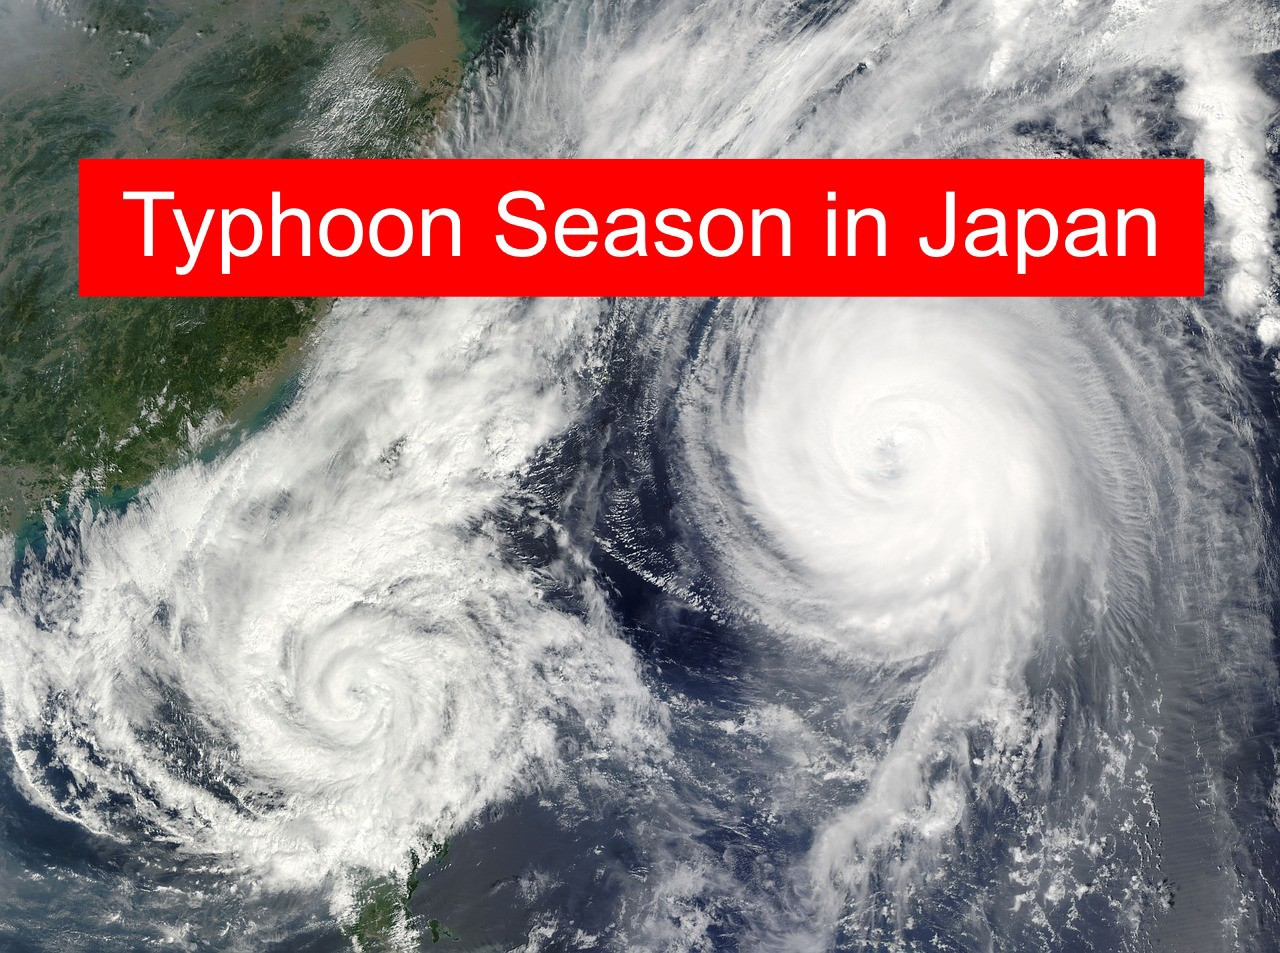 Japan Typhoon Season 2019: Things to Know - Japan Web Magazine